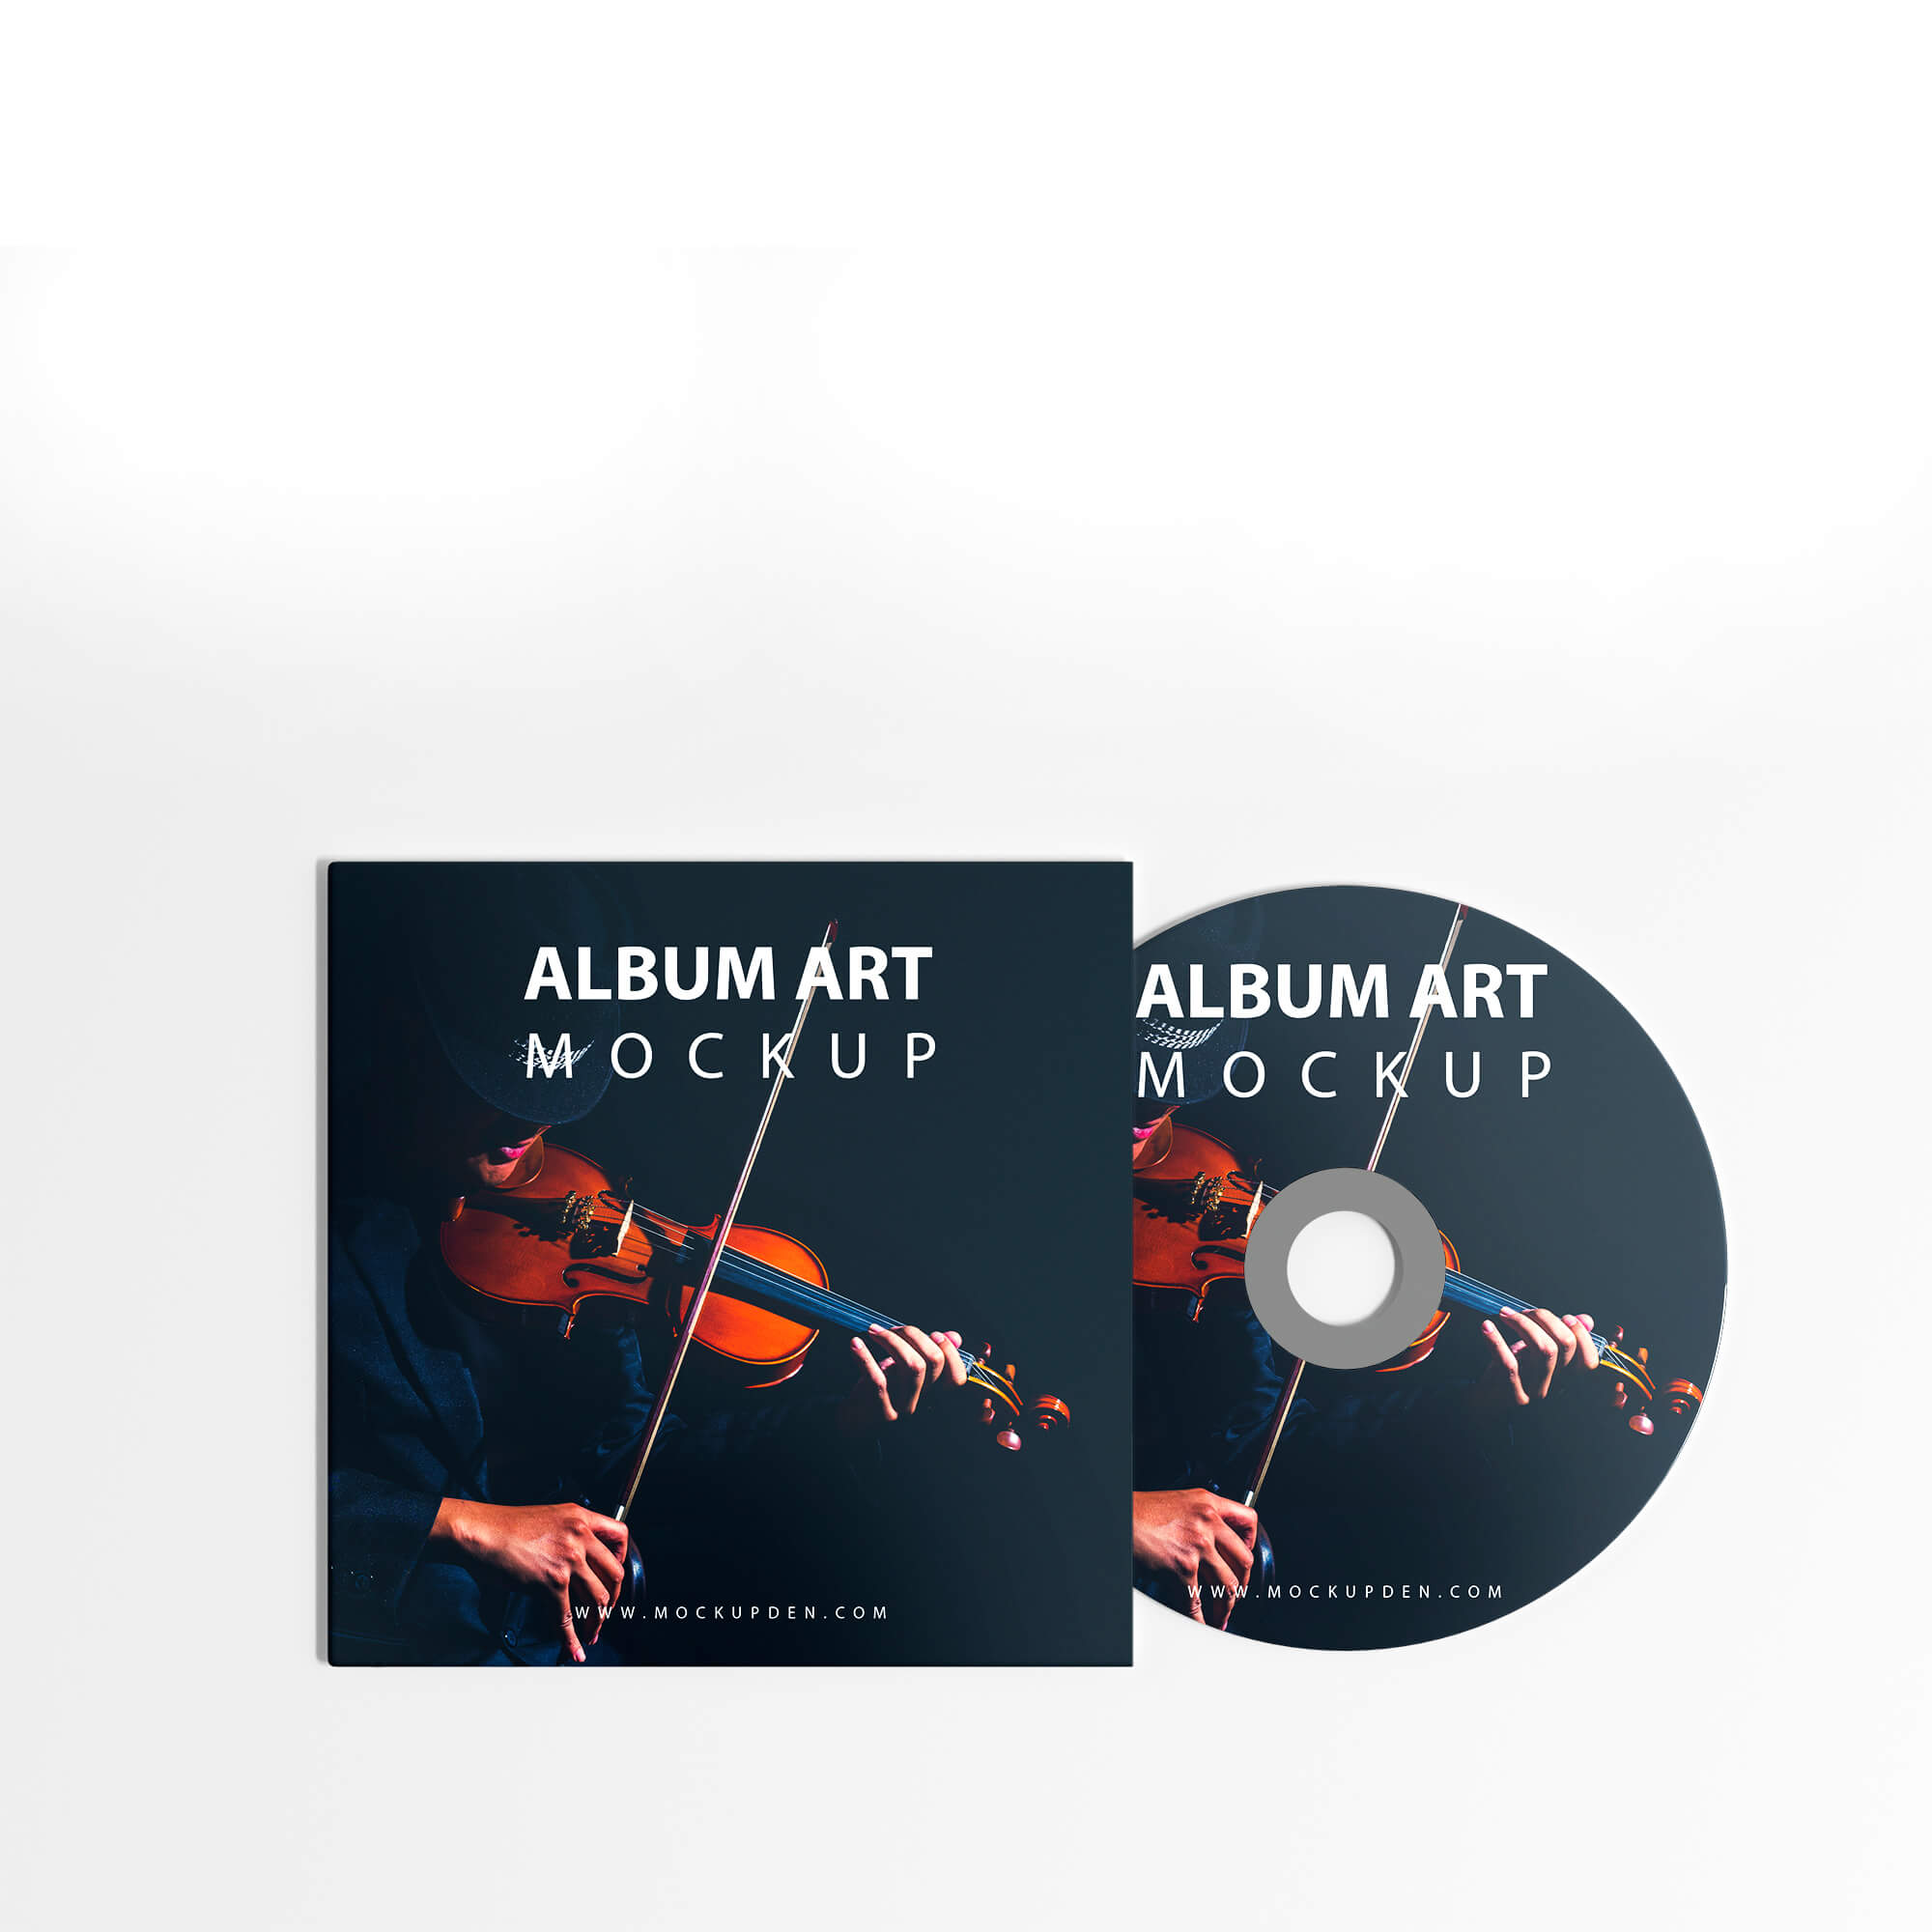 Design Free Album Art Mockup PSD Template